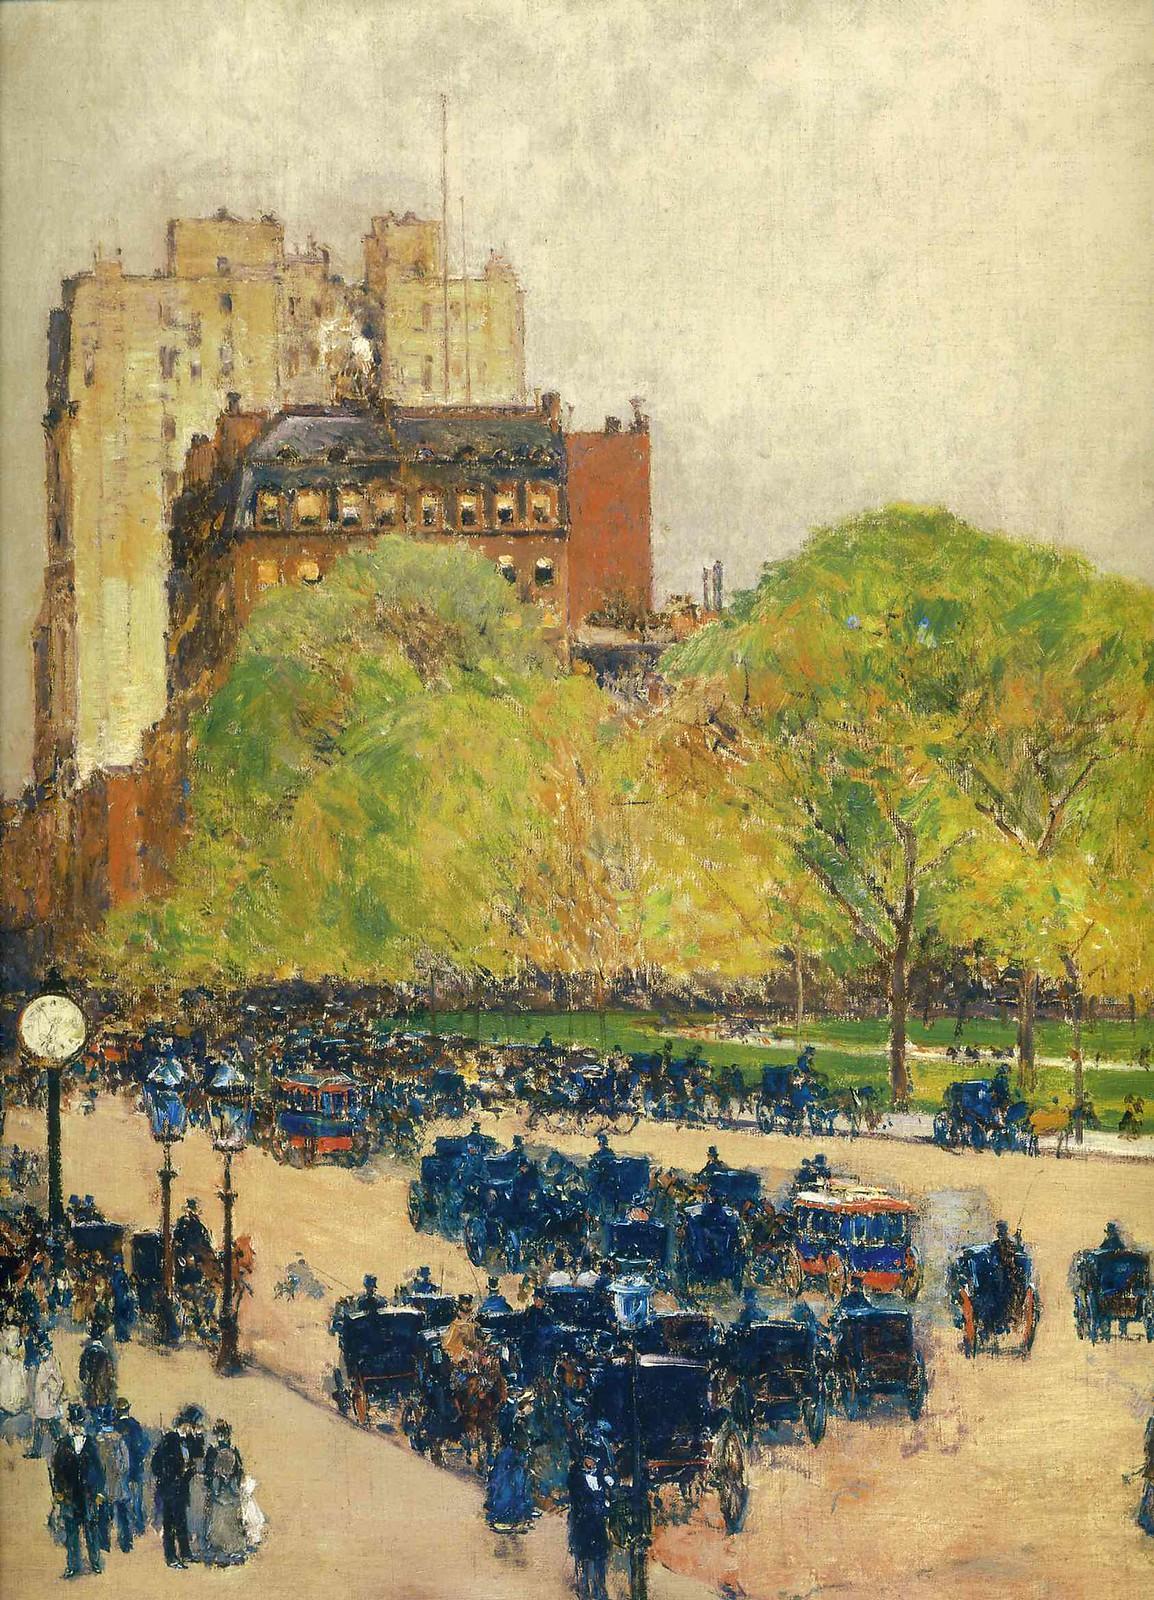 Spring Morning In The Heart Of The City by Childe Hassam, 1890